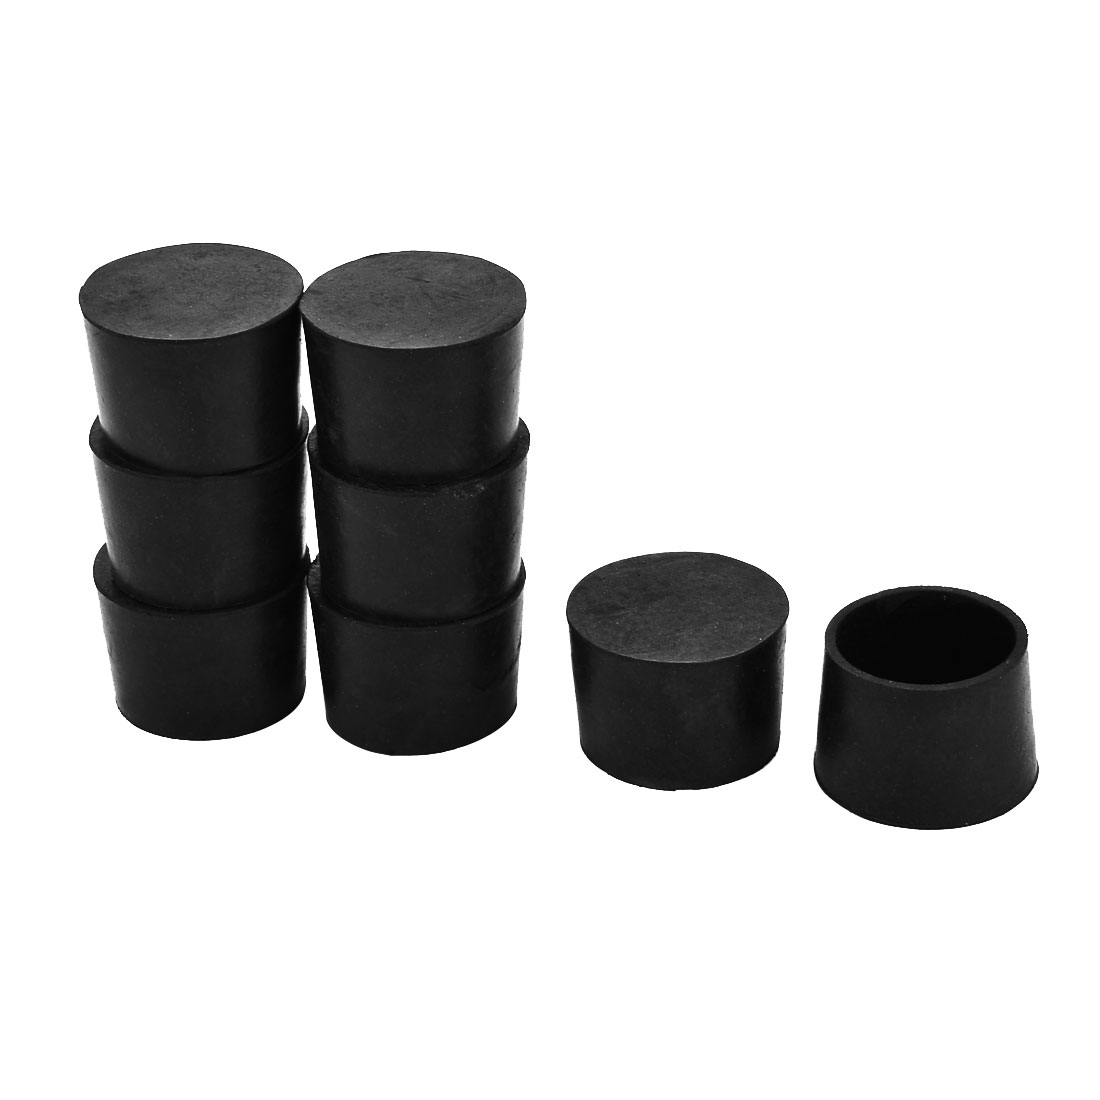 Furniture Rubber Round Leg Foot Cover Holder Protector Black 40mm Inner Dia 8pcs